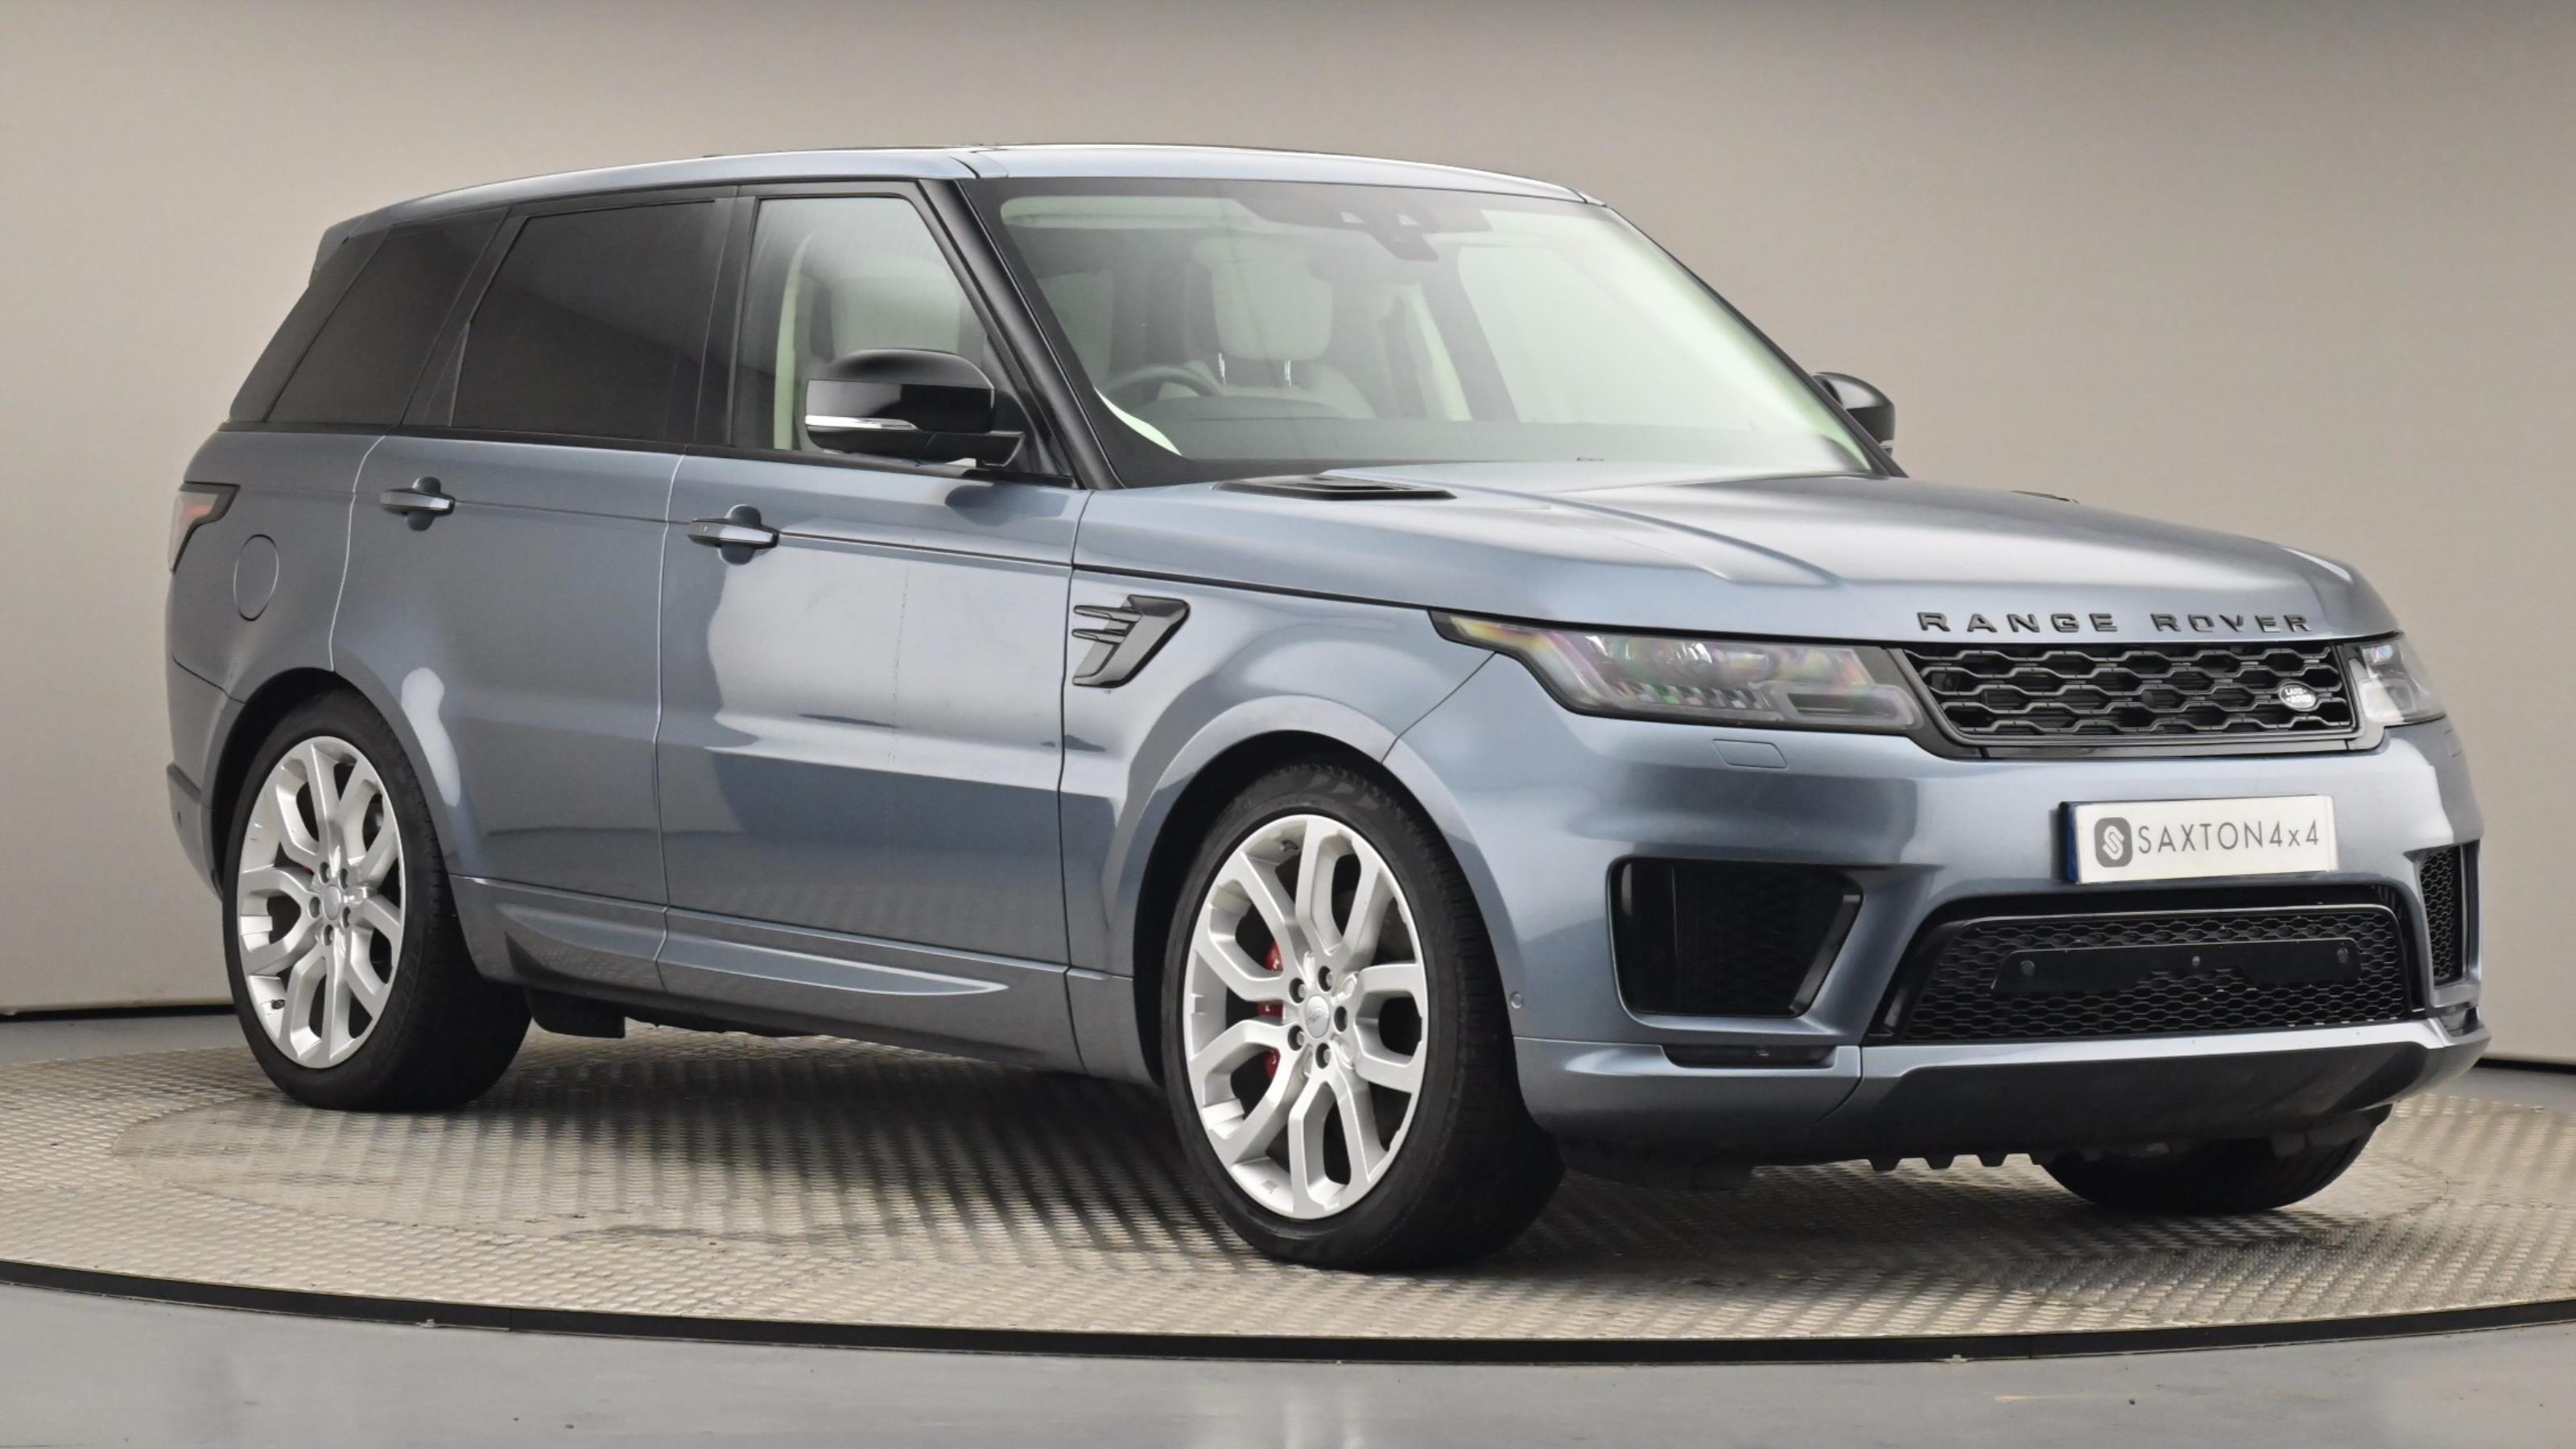 Used 2018 Land Rover RANGE ROVER SPORT 4.4 SDV8 Autobiography Dynamic 5dr Auto BLUE at Saxton4x4